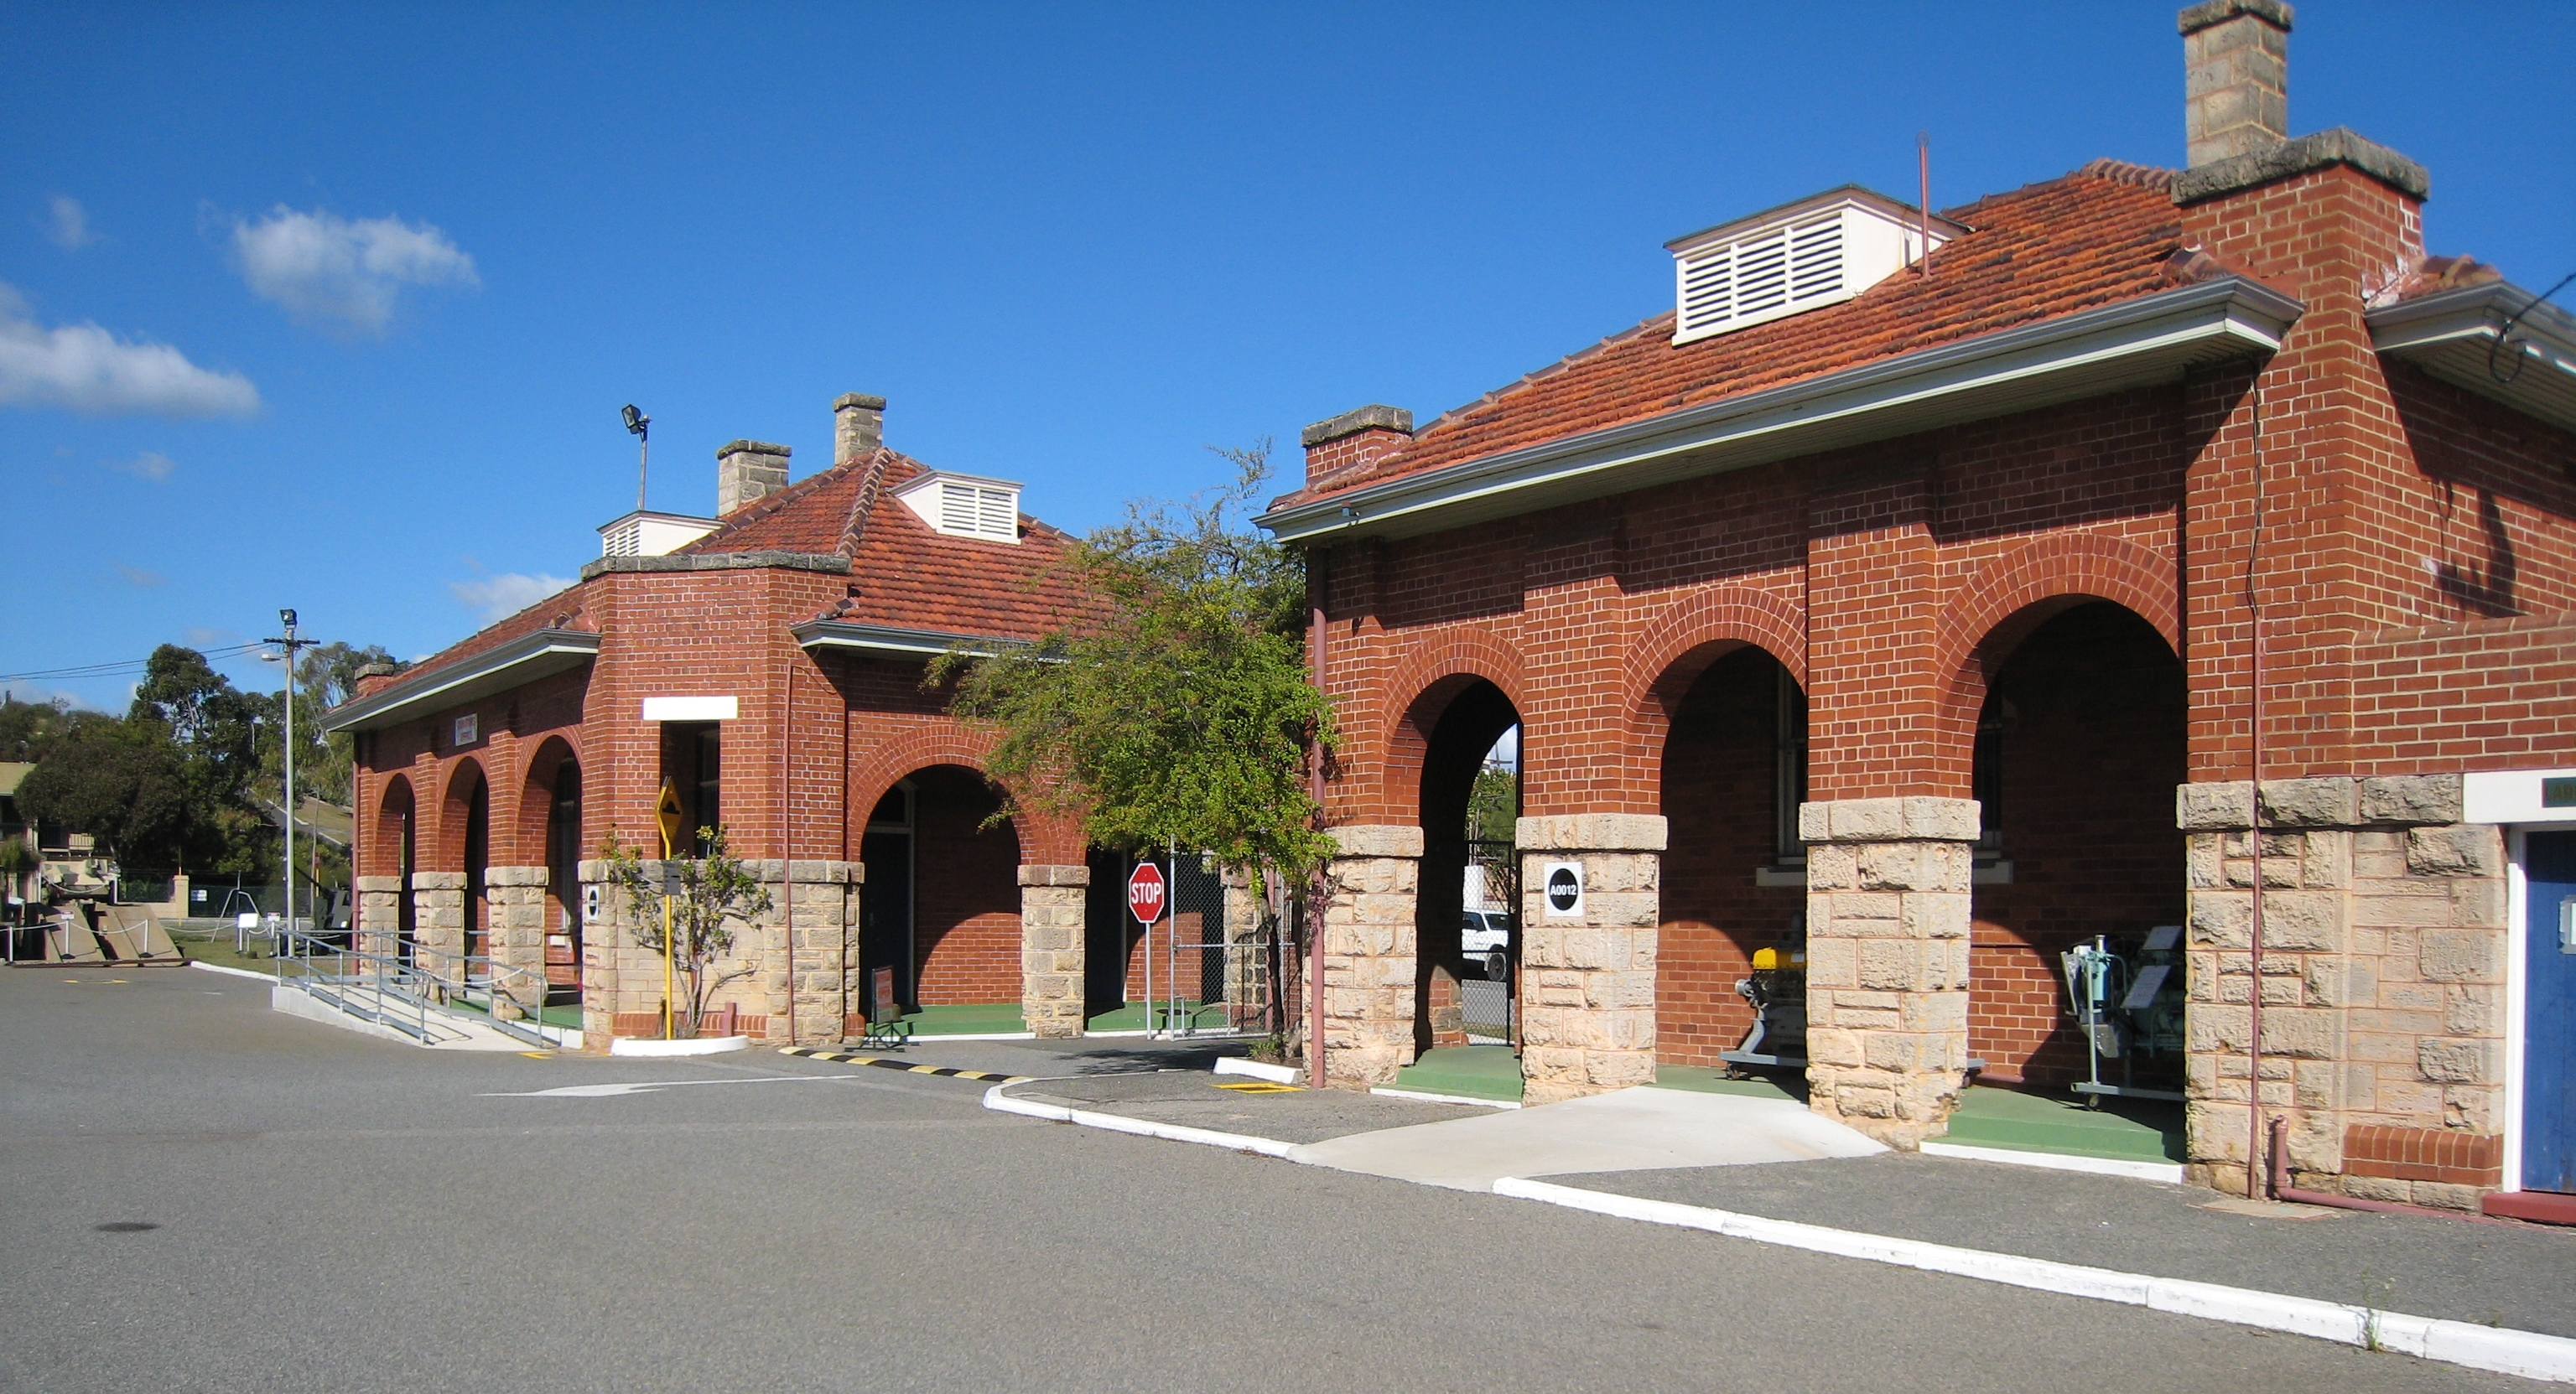 Barracks buildings